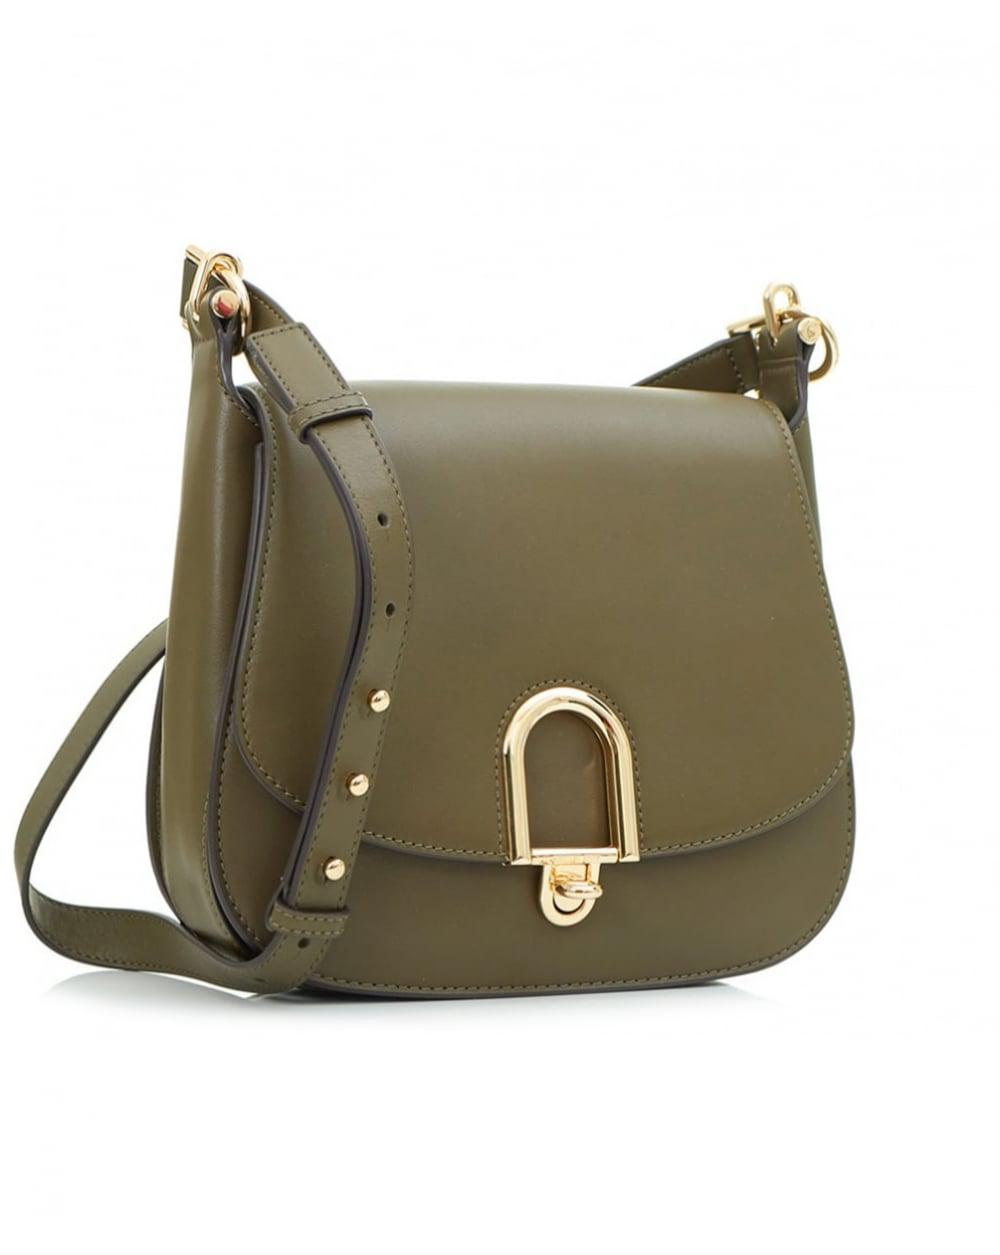 fbcb5db86cdb Michael Kors Delfina Large Leather Saddle Bag in Green - Lyst